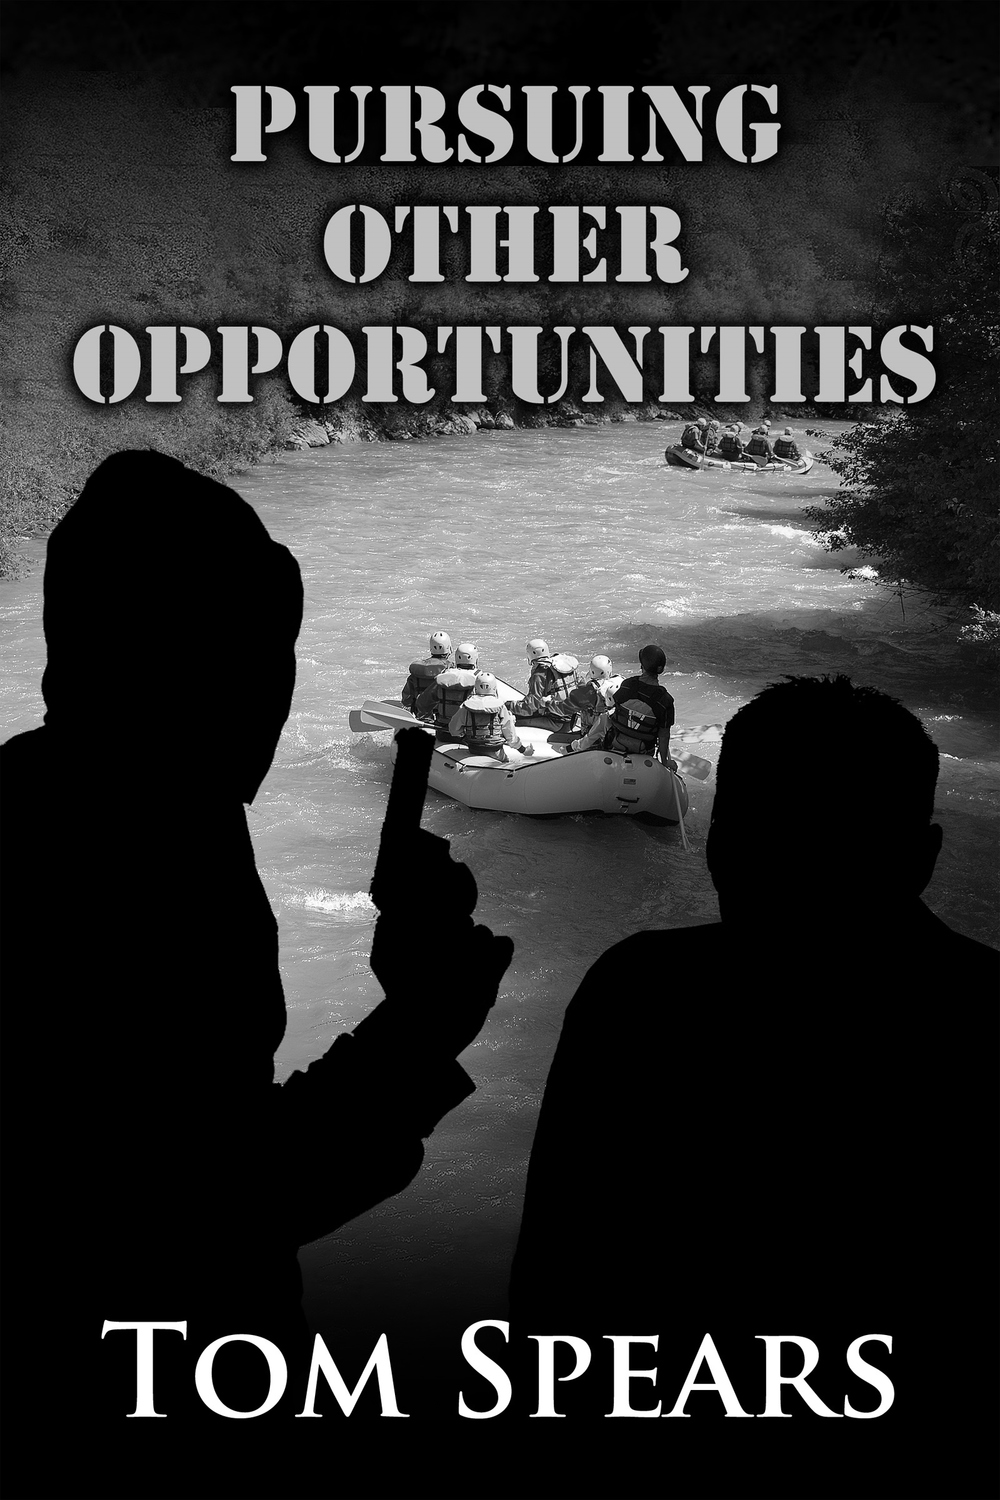 Cover of my latest novel:  Pursuing Other Opportunities